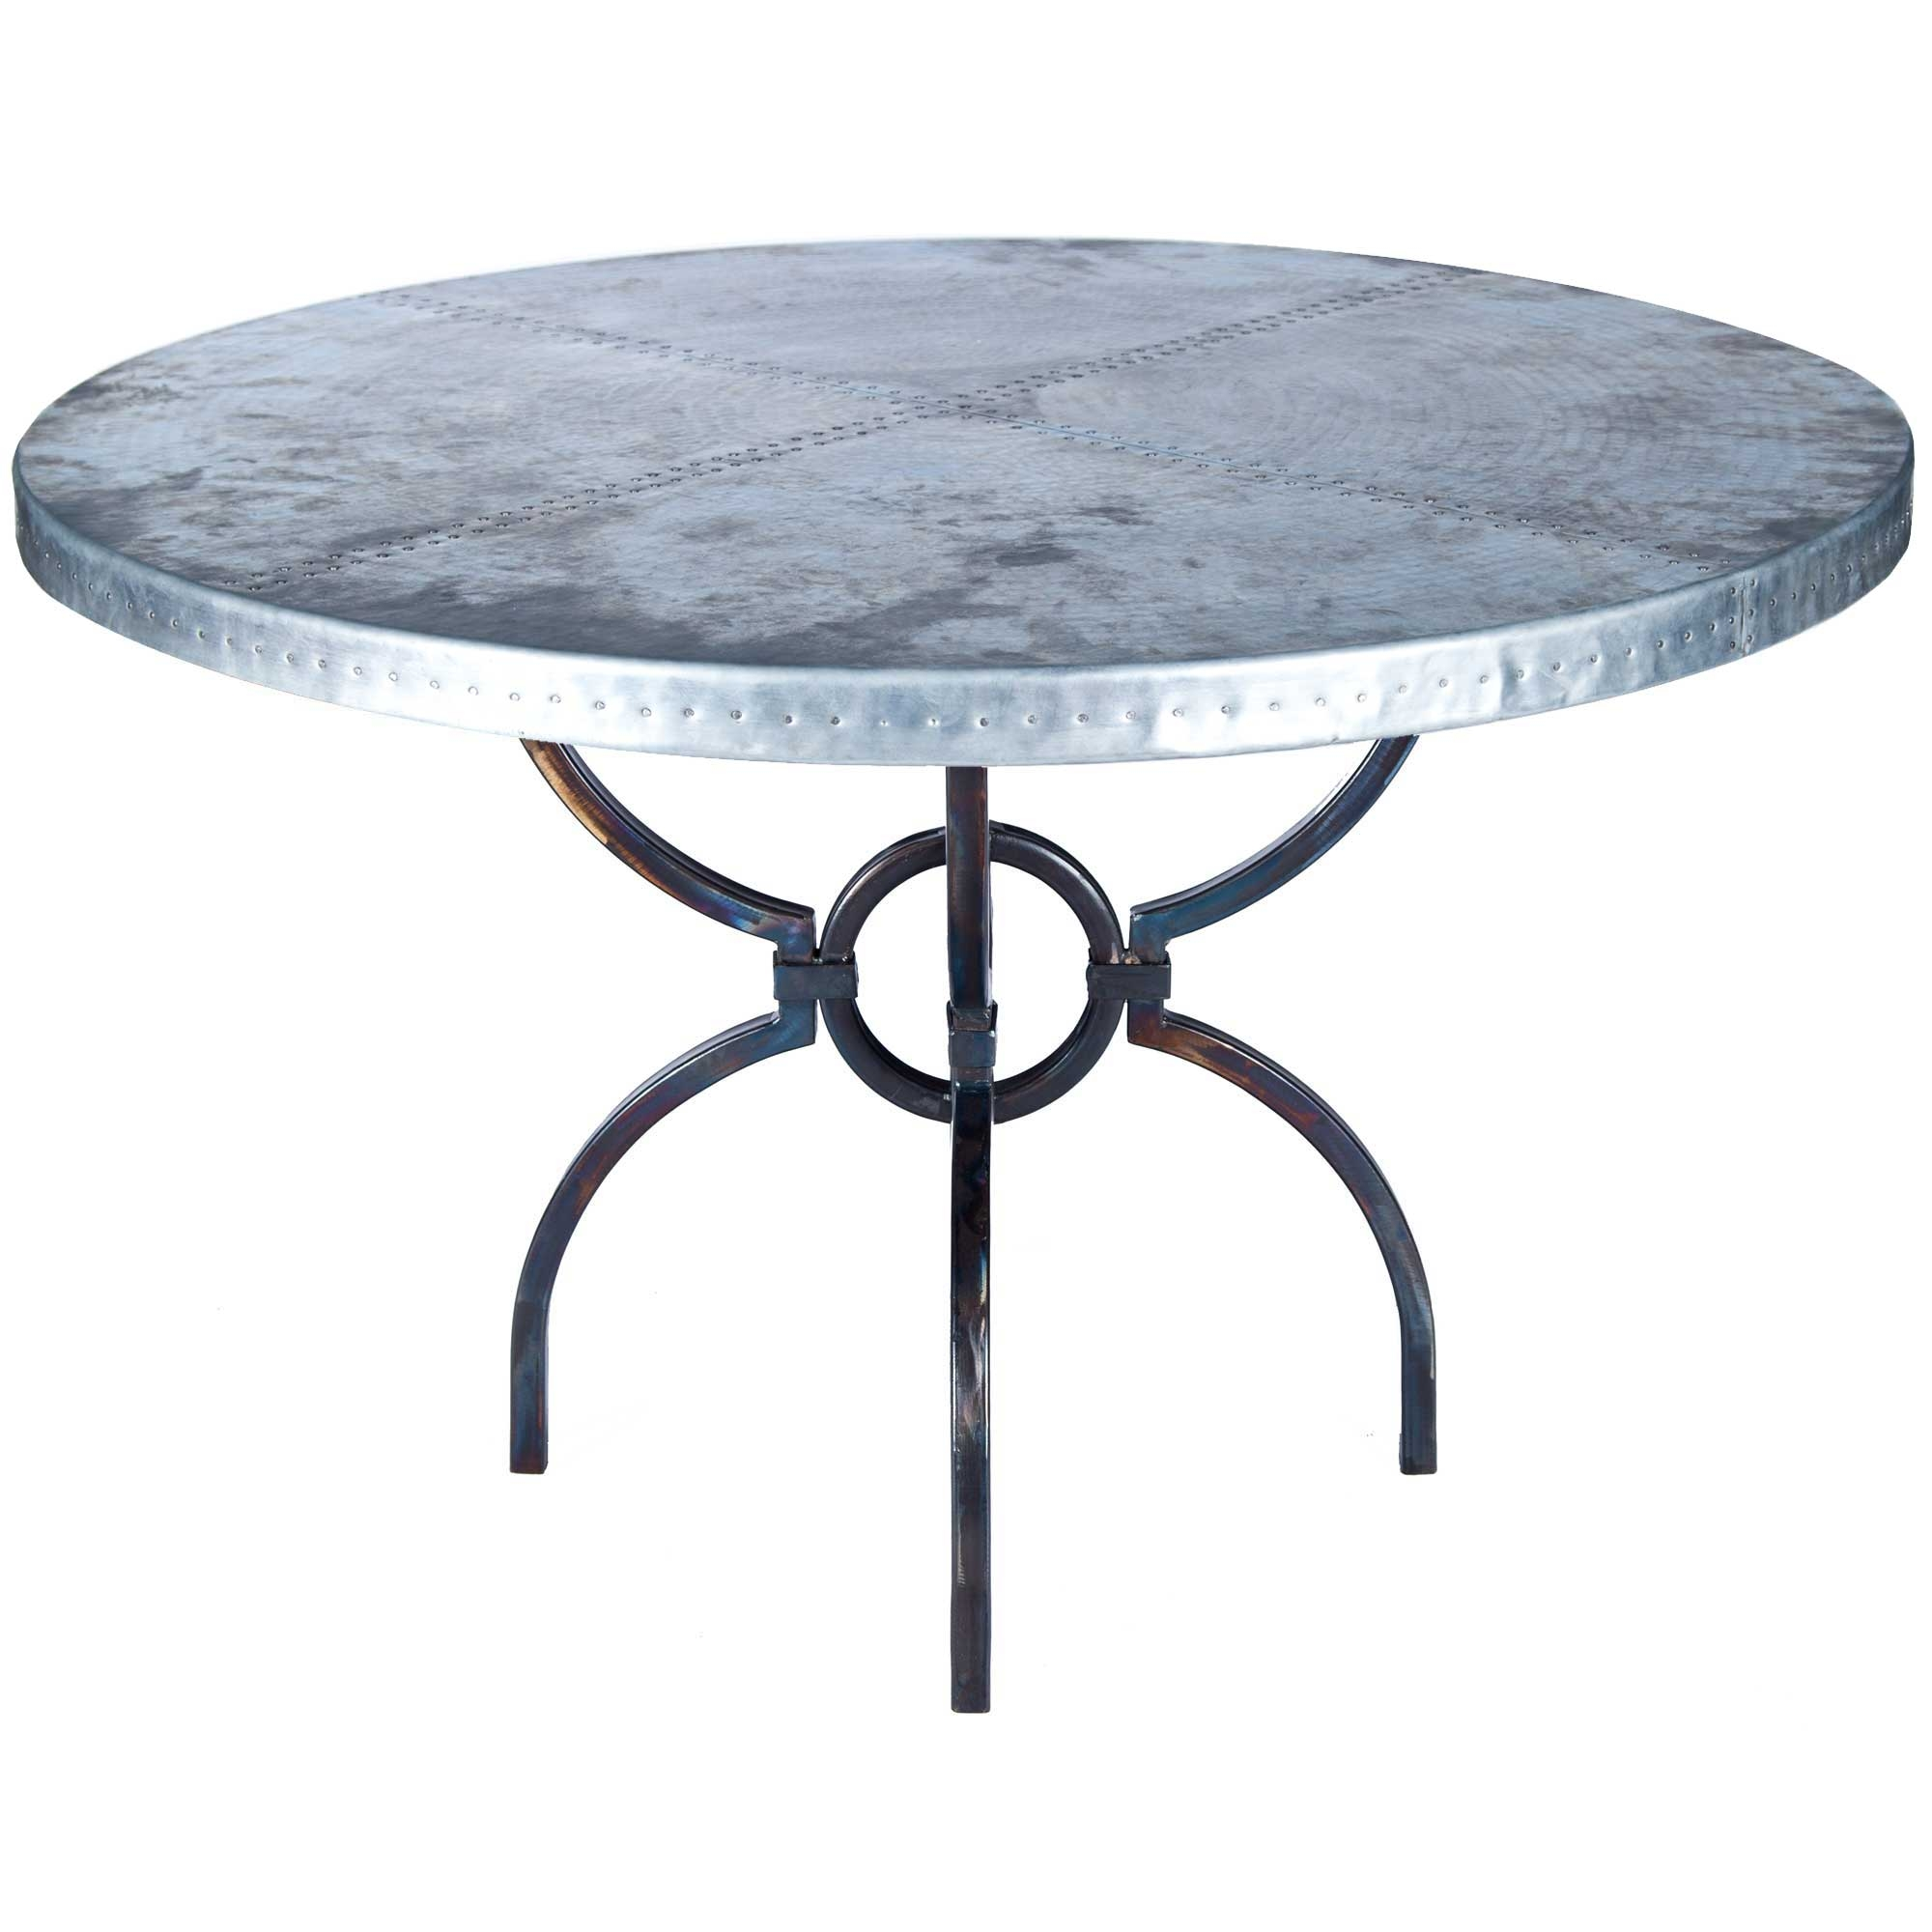 Logan Iron Dining Table with 48 Round Hammered Zinc Top